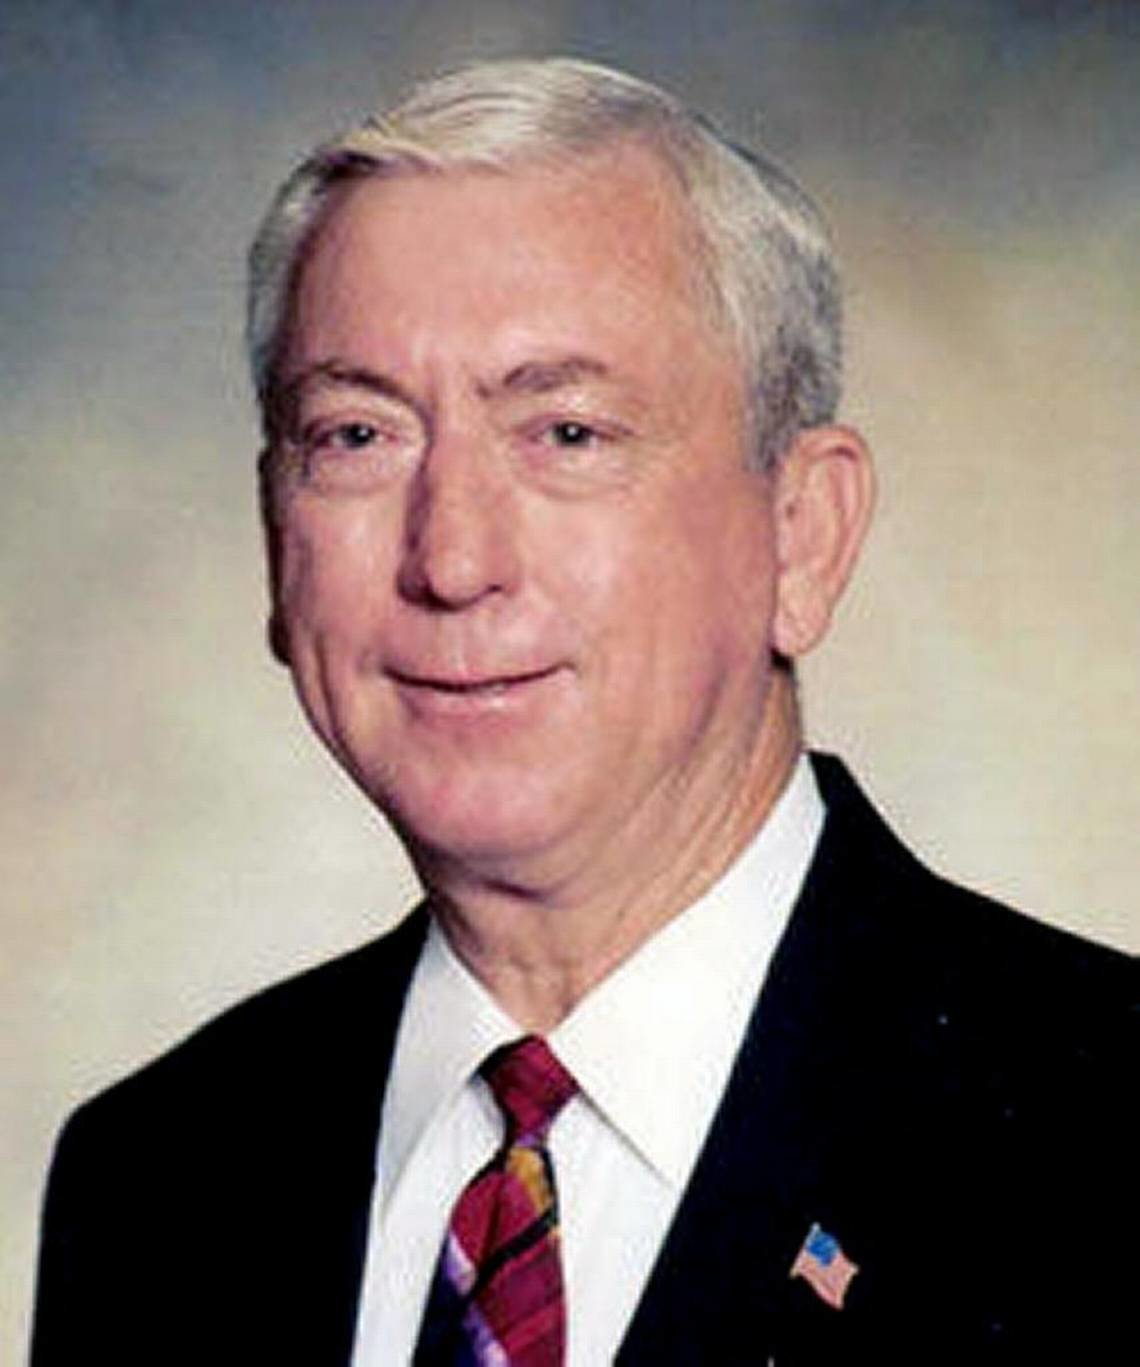 Mike Cross, former Chatham County Commissioner